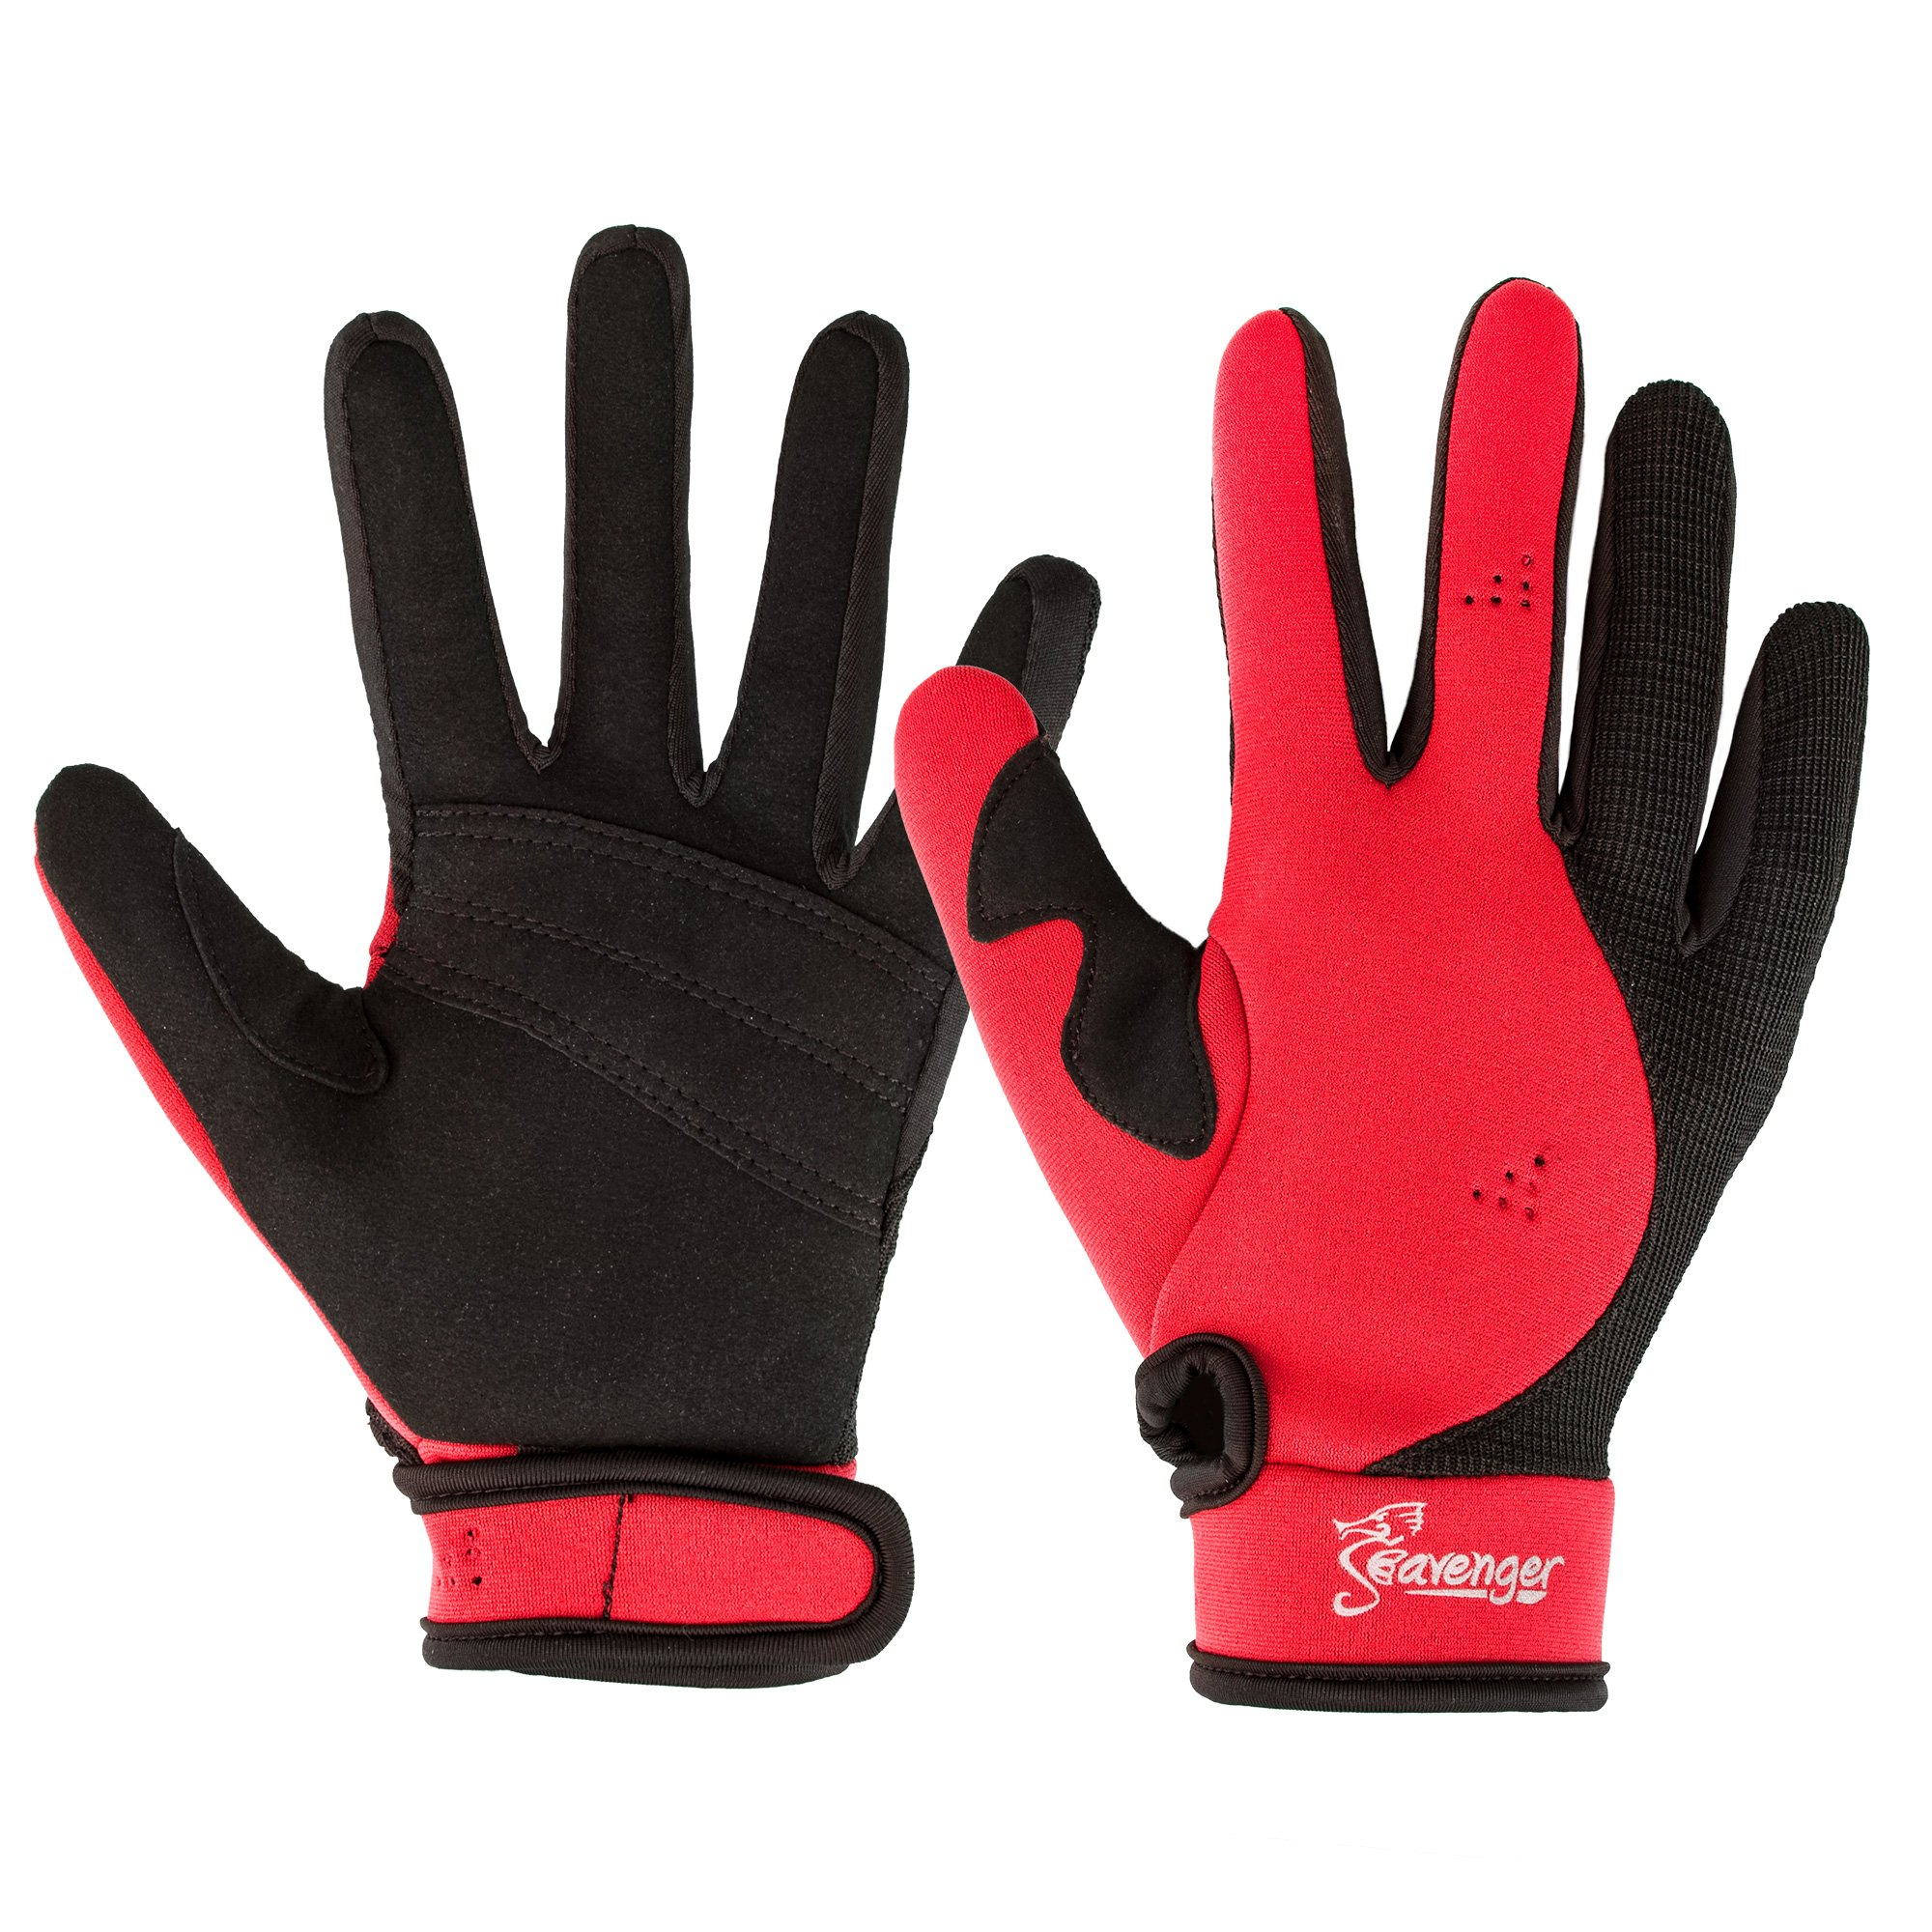 Seavenger Abyss Dive Gloves | 1.5mm Neoprene Mesh | Scuba Diving, Wakeboarding, Spearfishing (Red, Small) by Seavenger